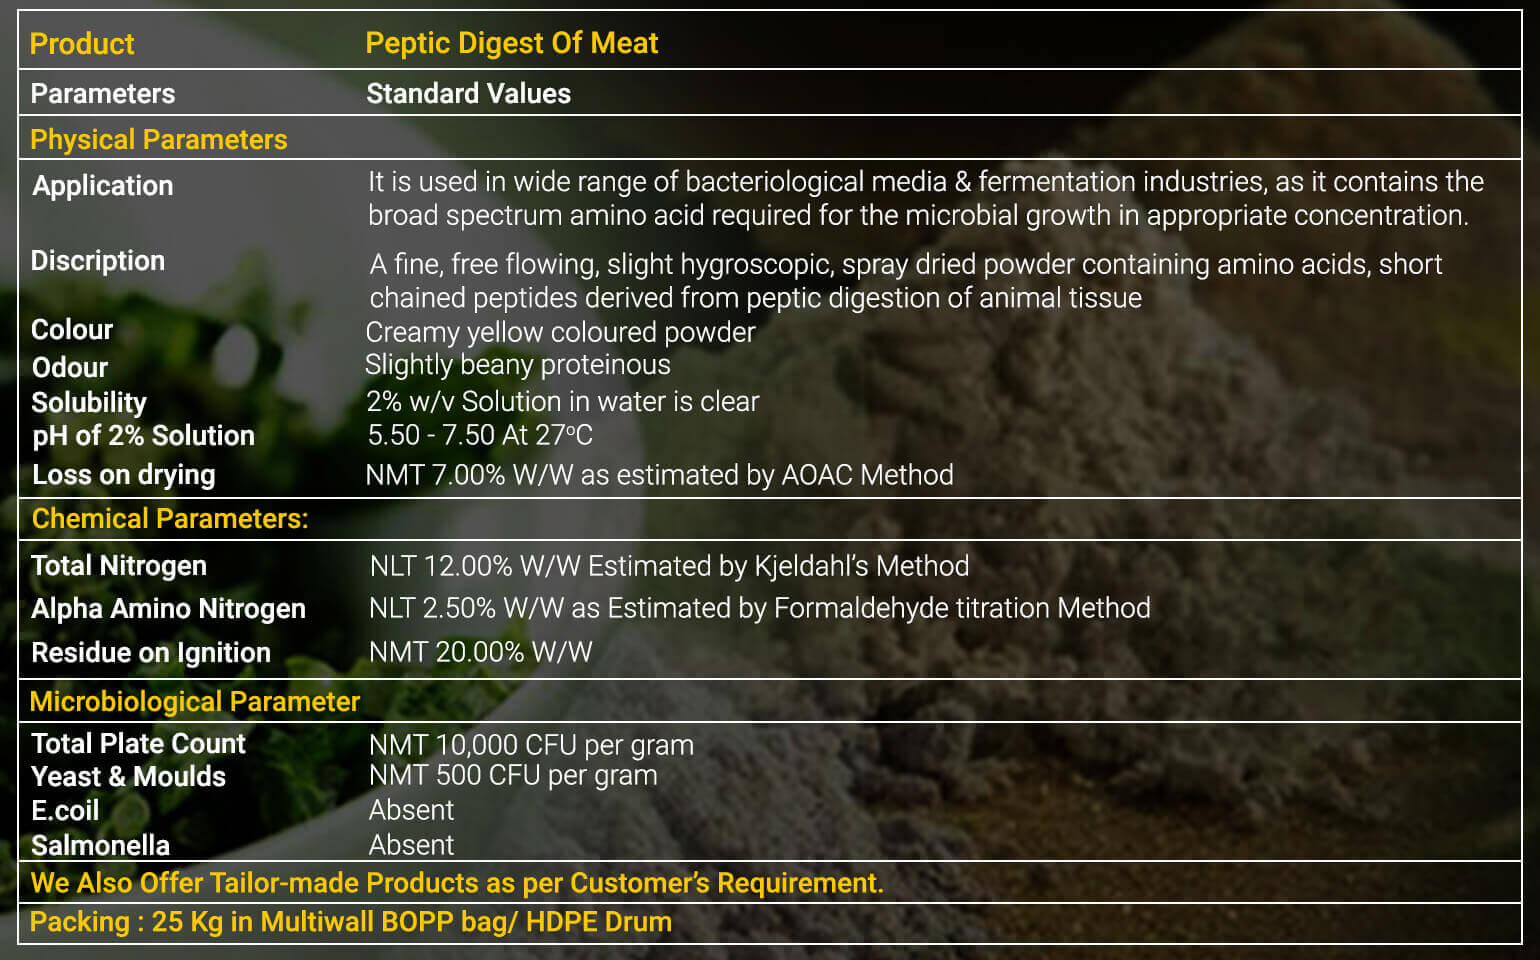 PEPTIC DIGEST OF MEAT